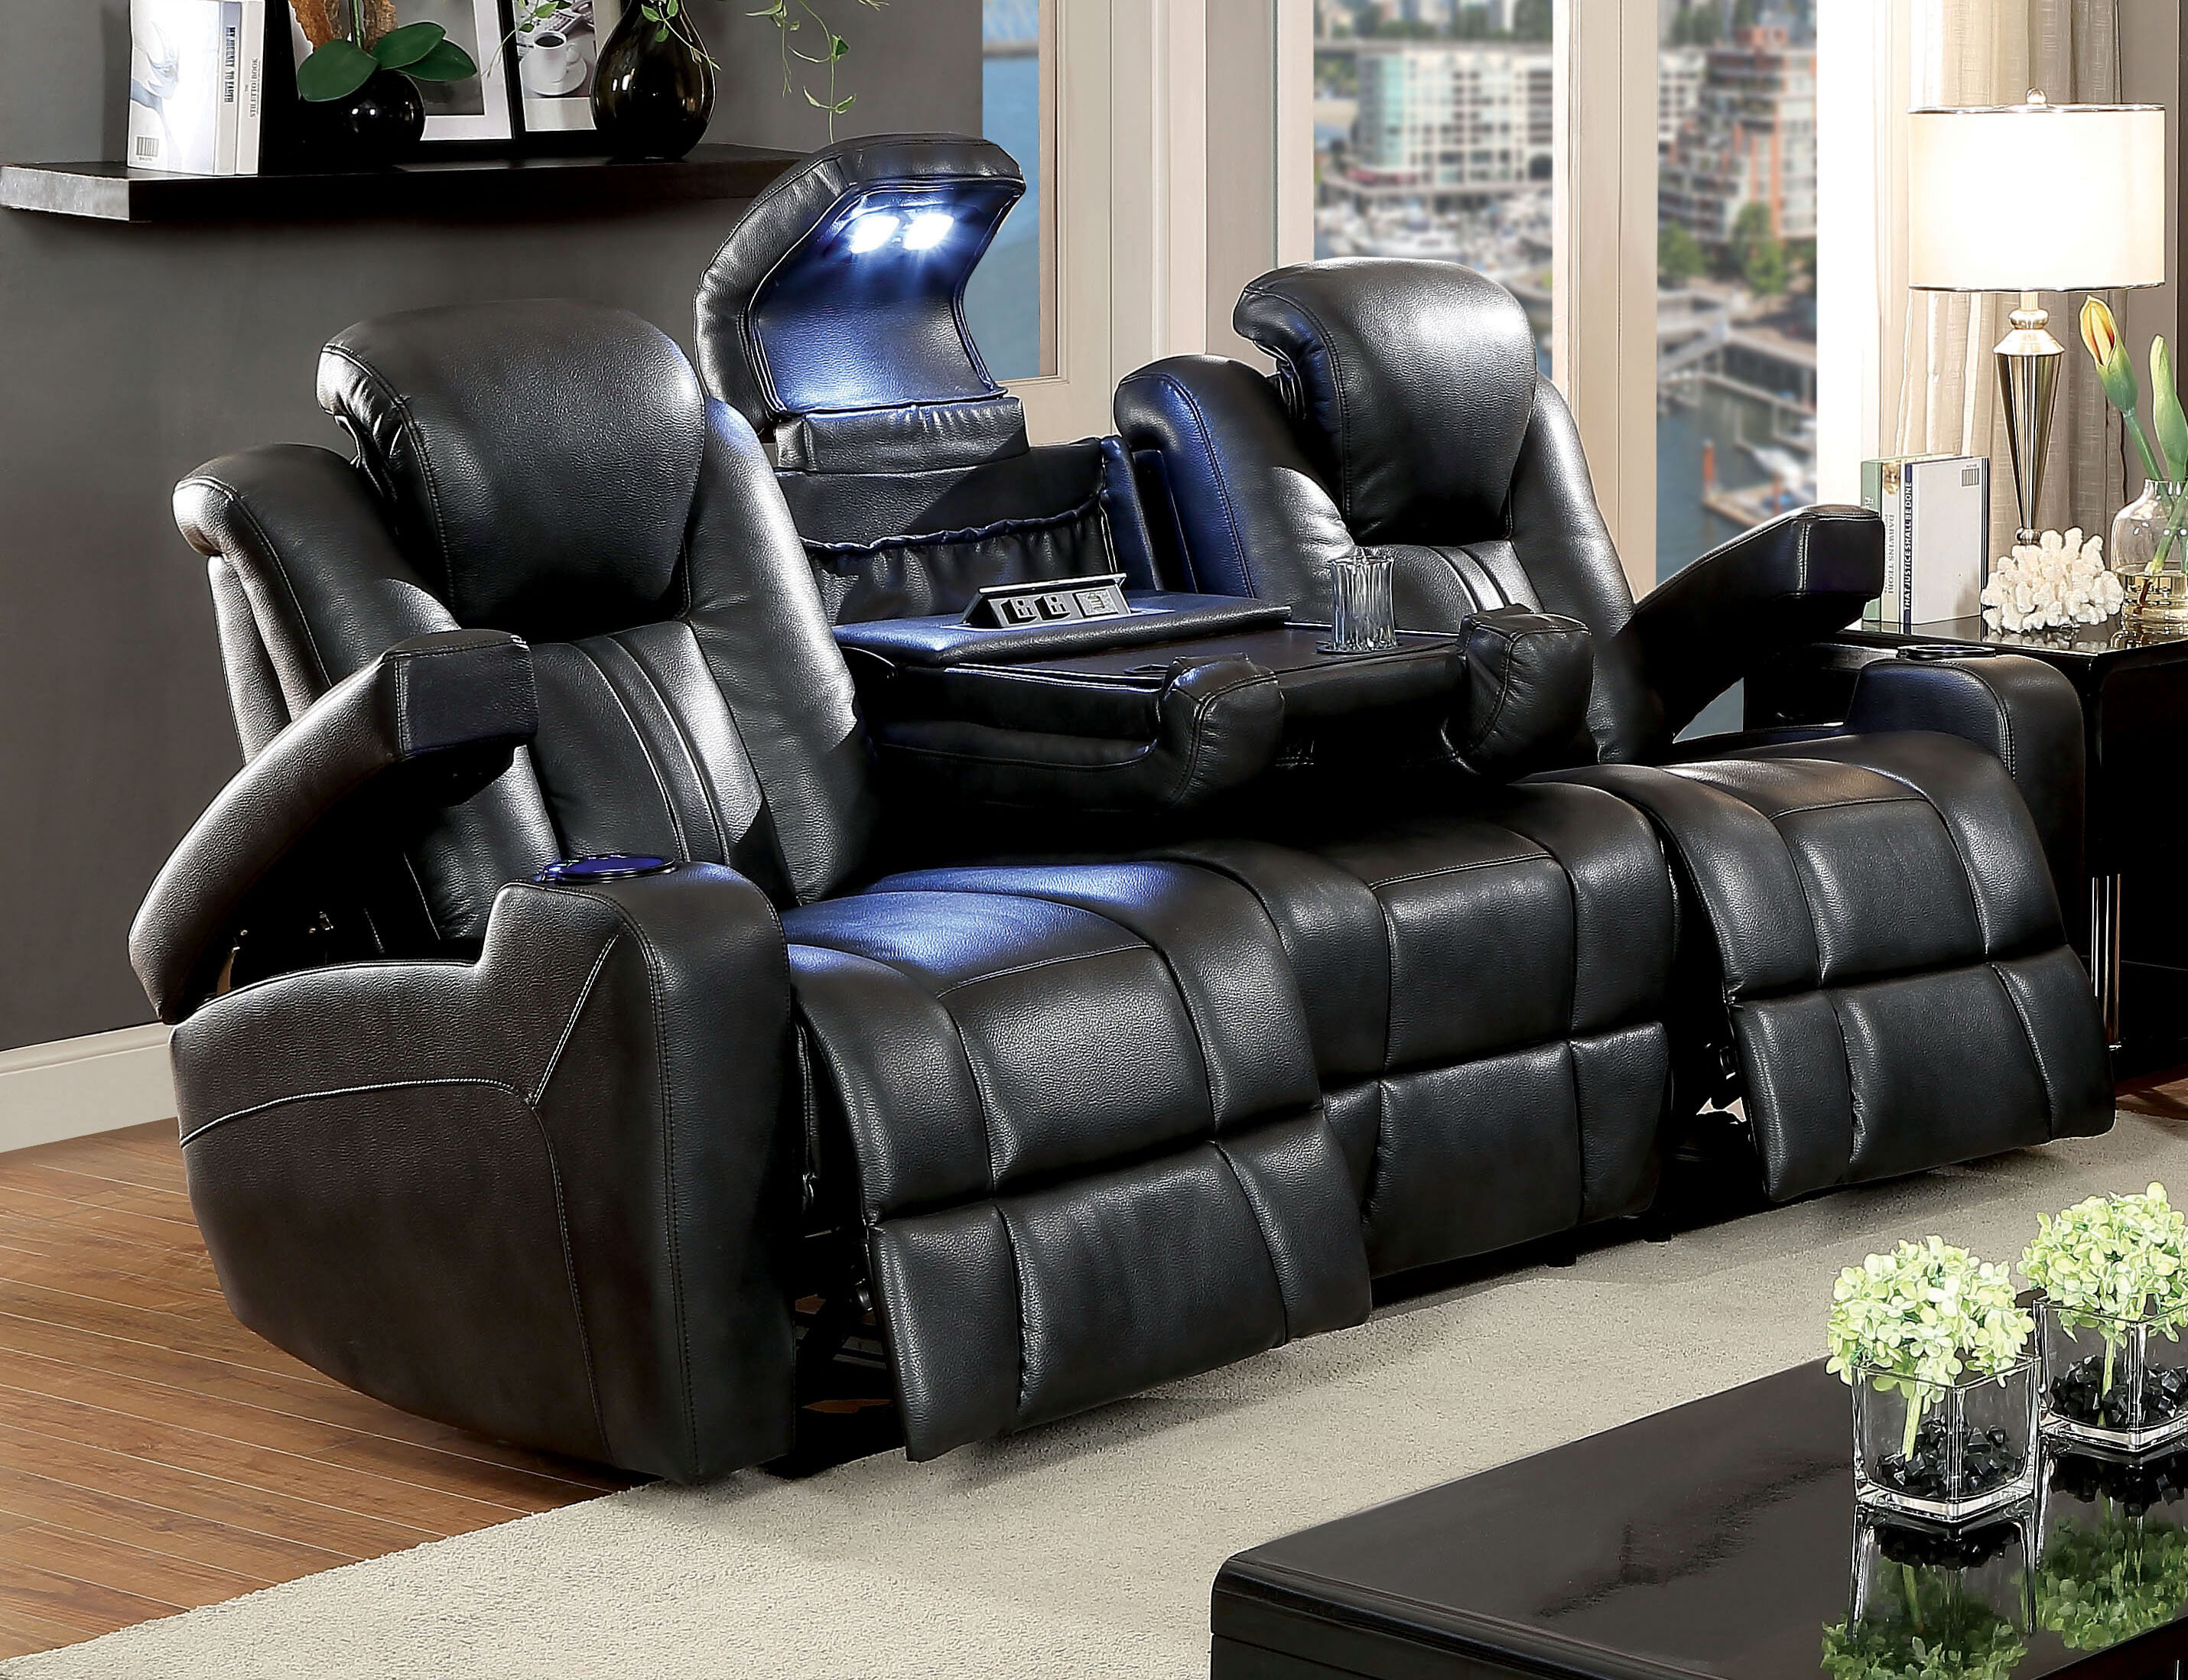 fabric leather cfm signature room sets ashley design master by living rooms hayneedle set commando product